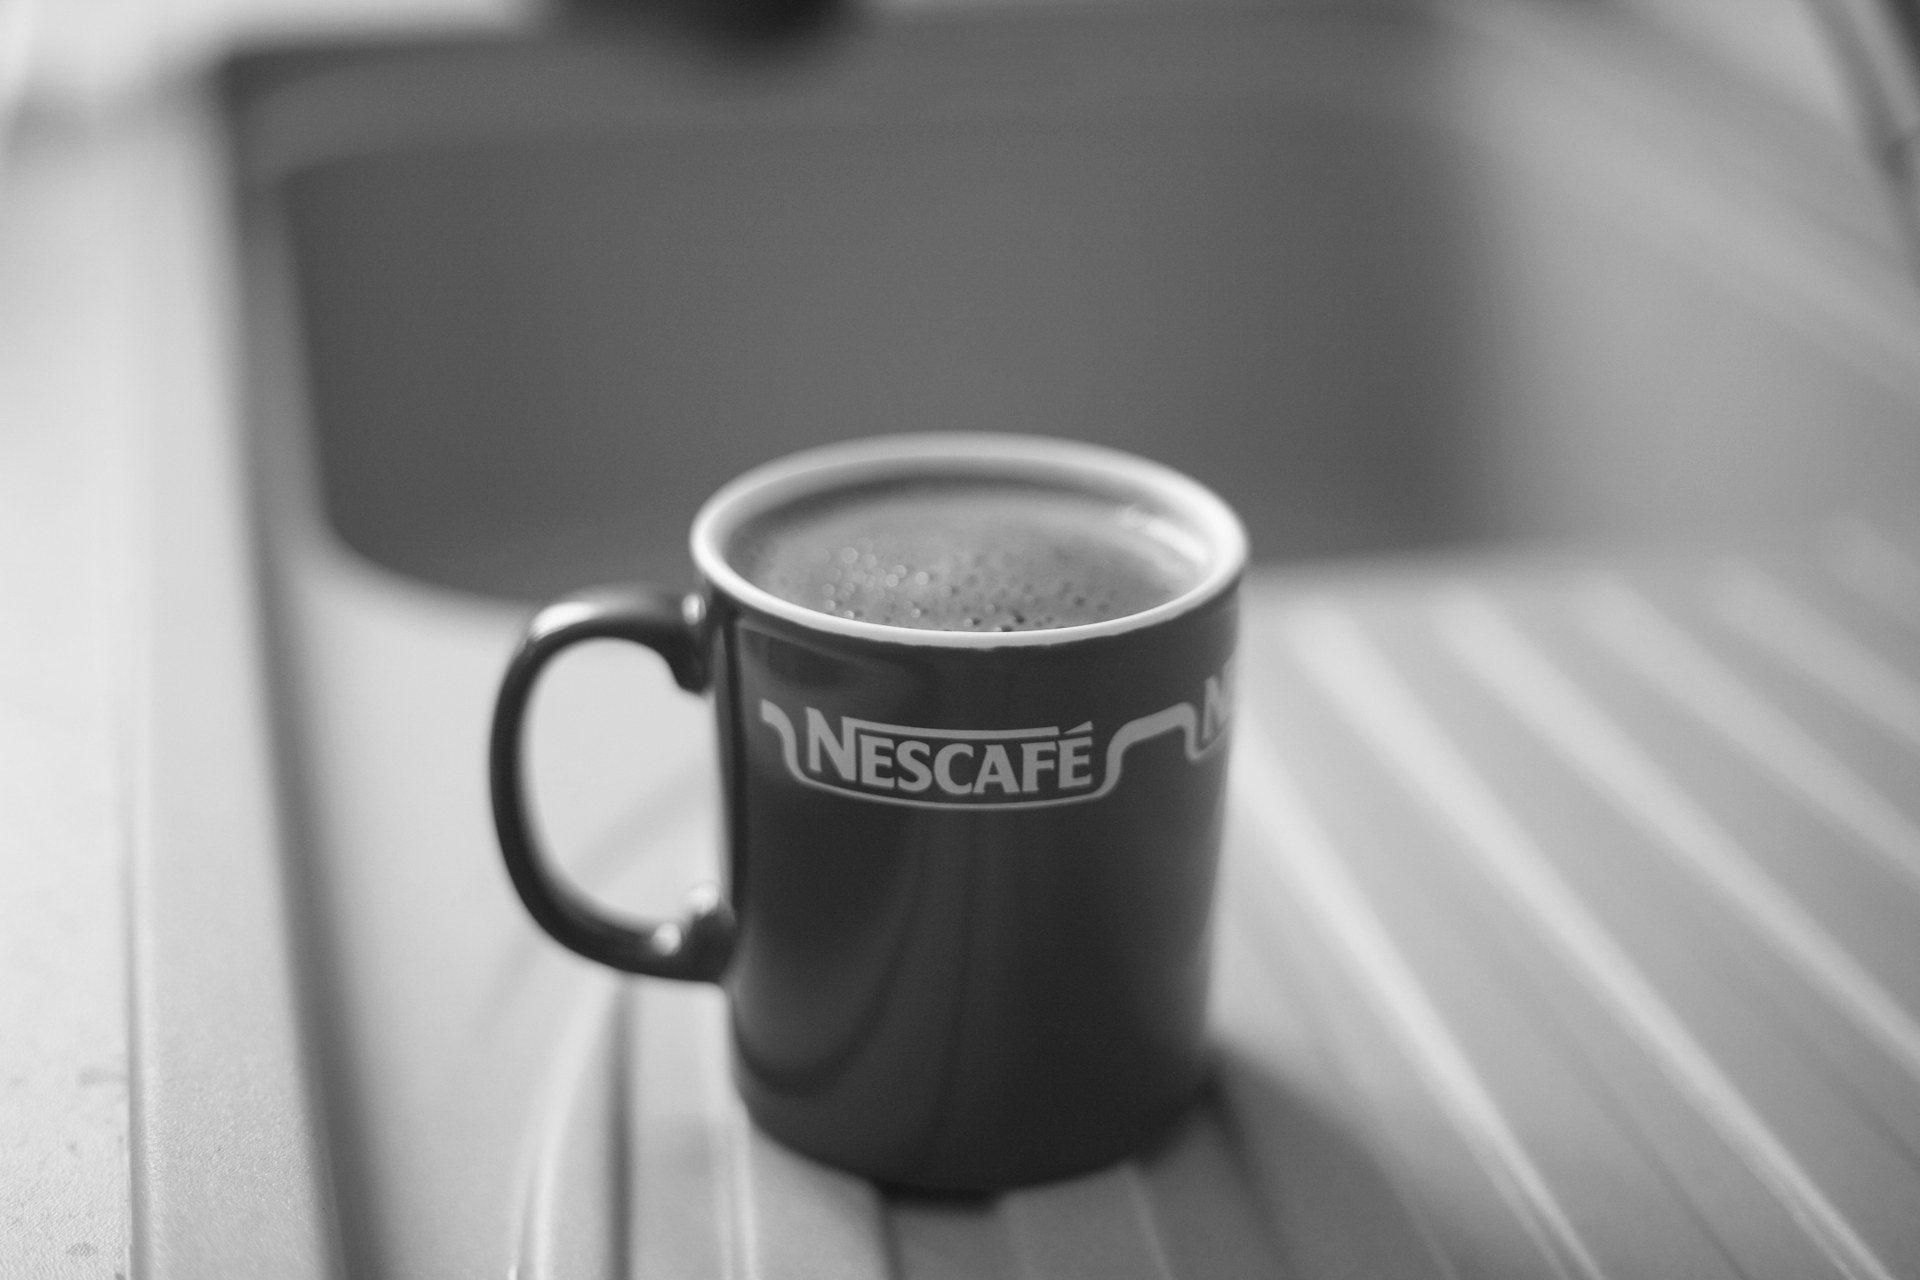 A cup of Nescafe coffee sits beside a sink